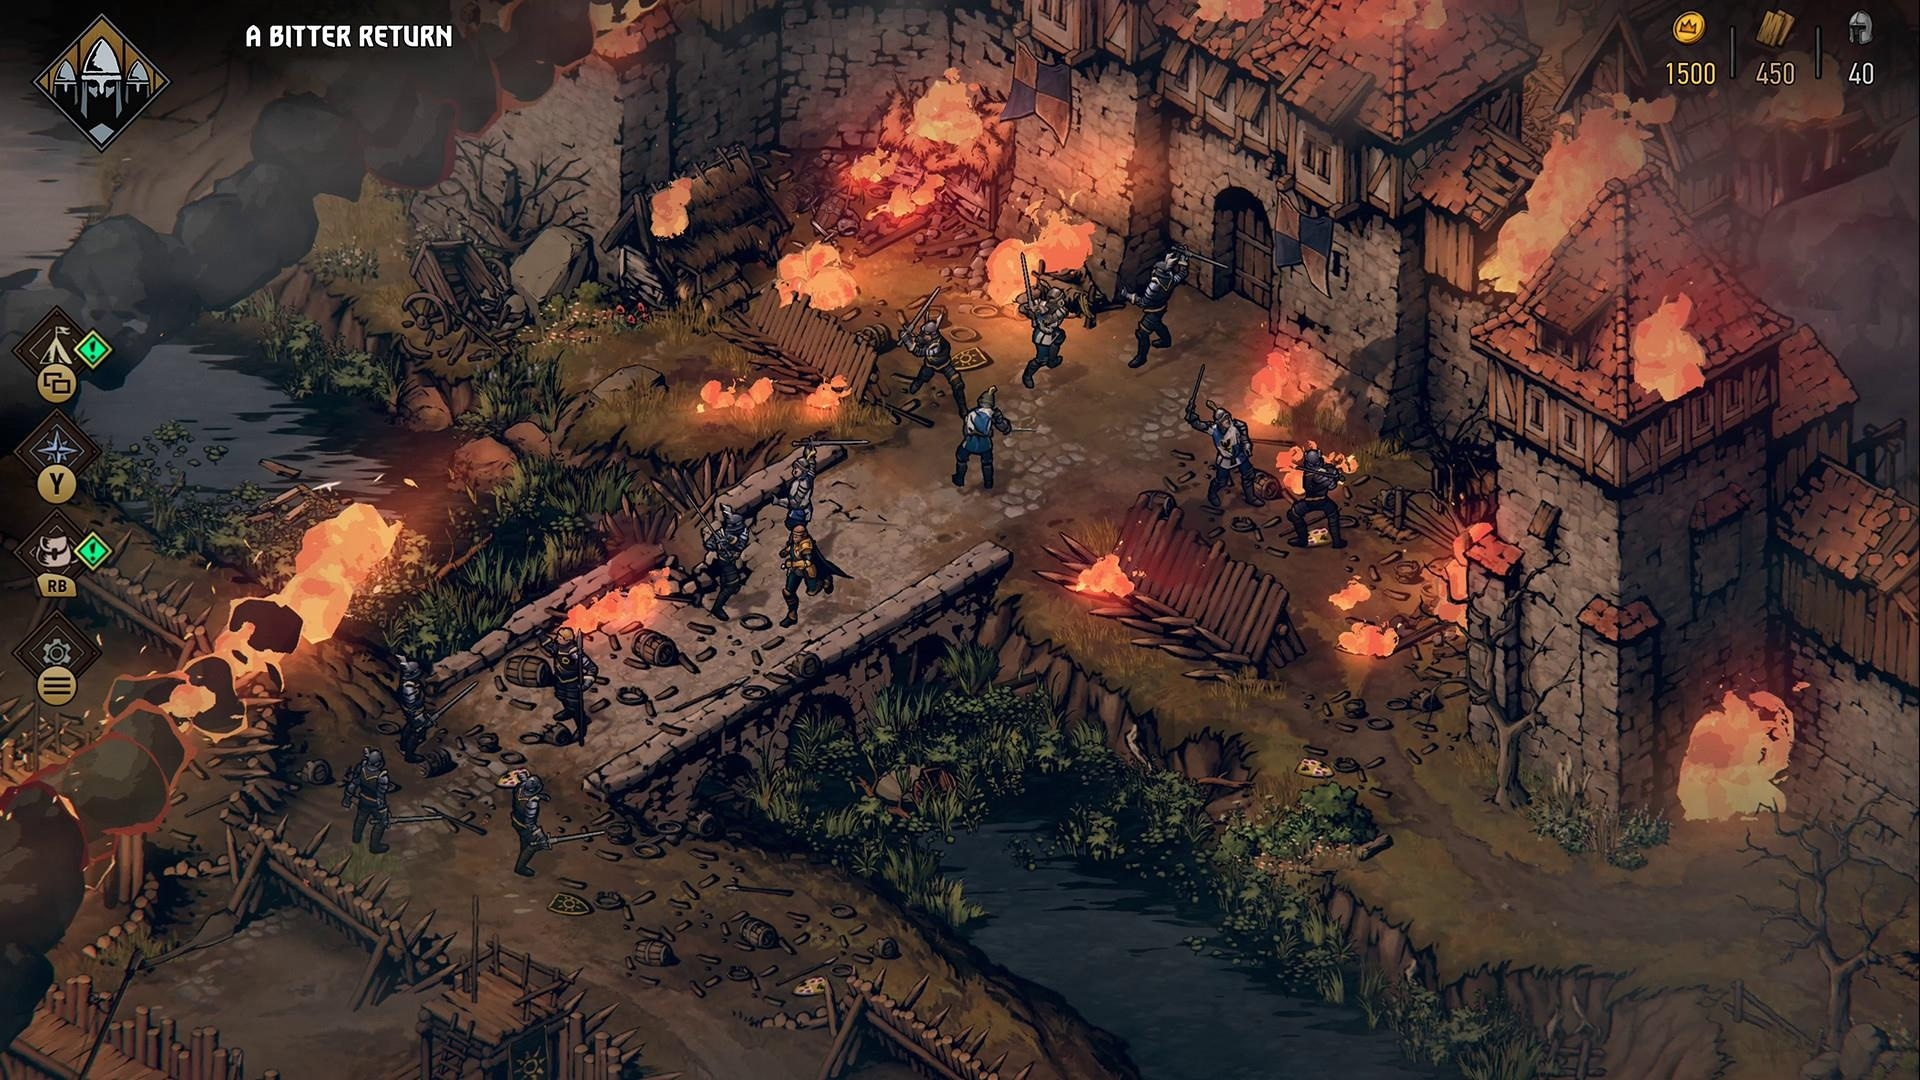 thronebreaker the witcher tales xbox game pass best games